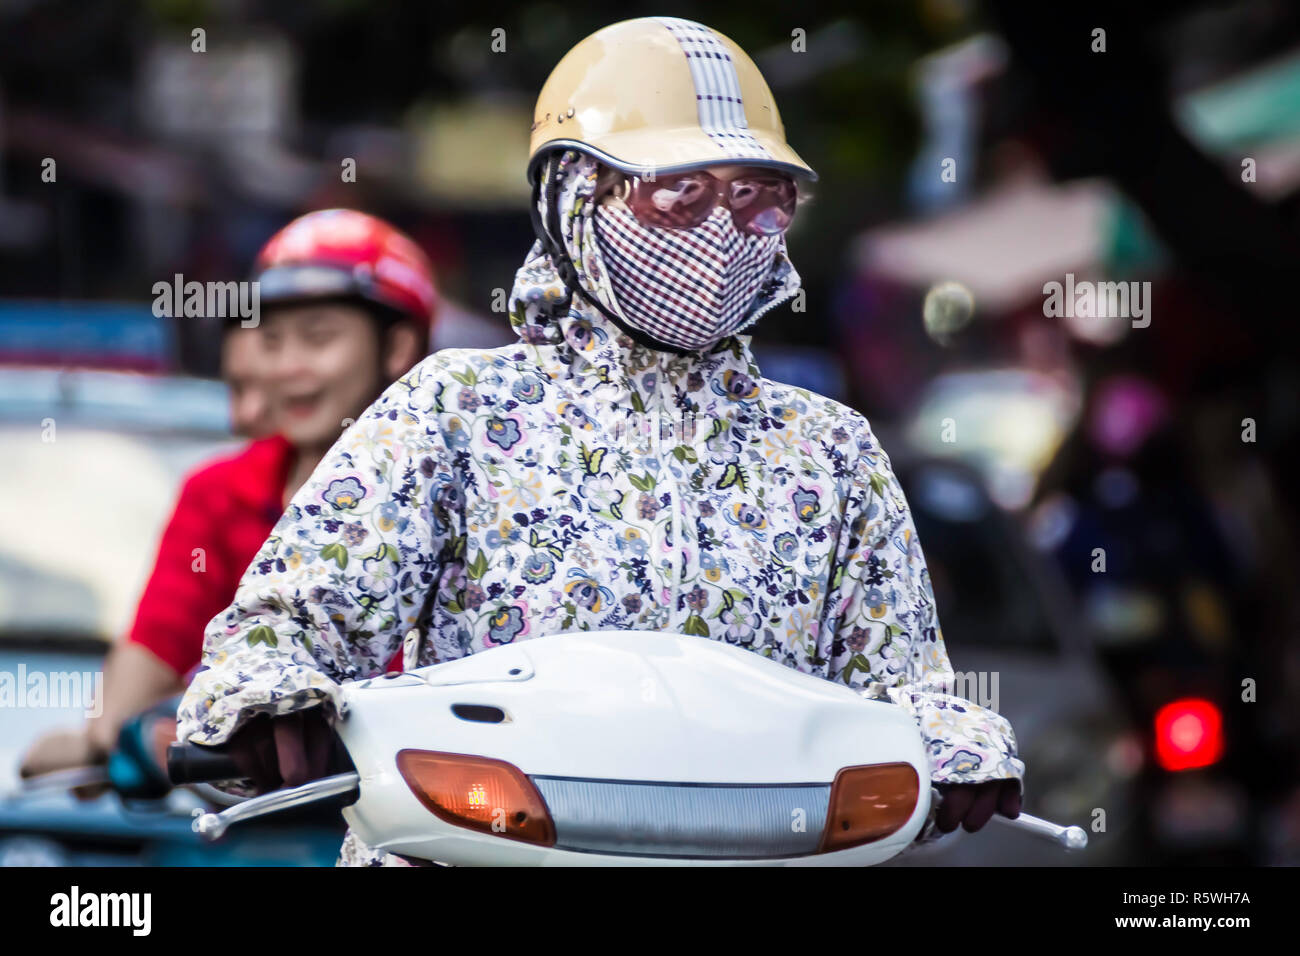 female in protective against air pollution mask and helmet. Car reflection in sunglasses. - Stock Image